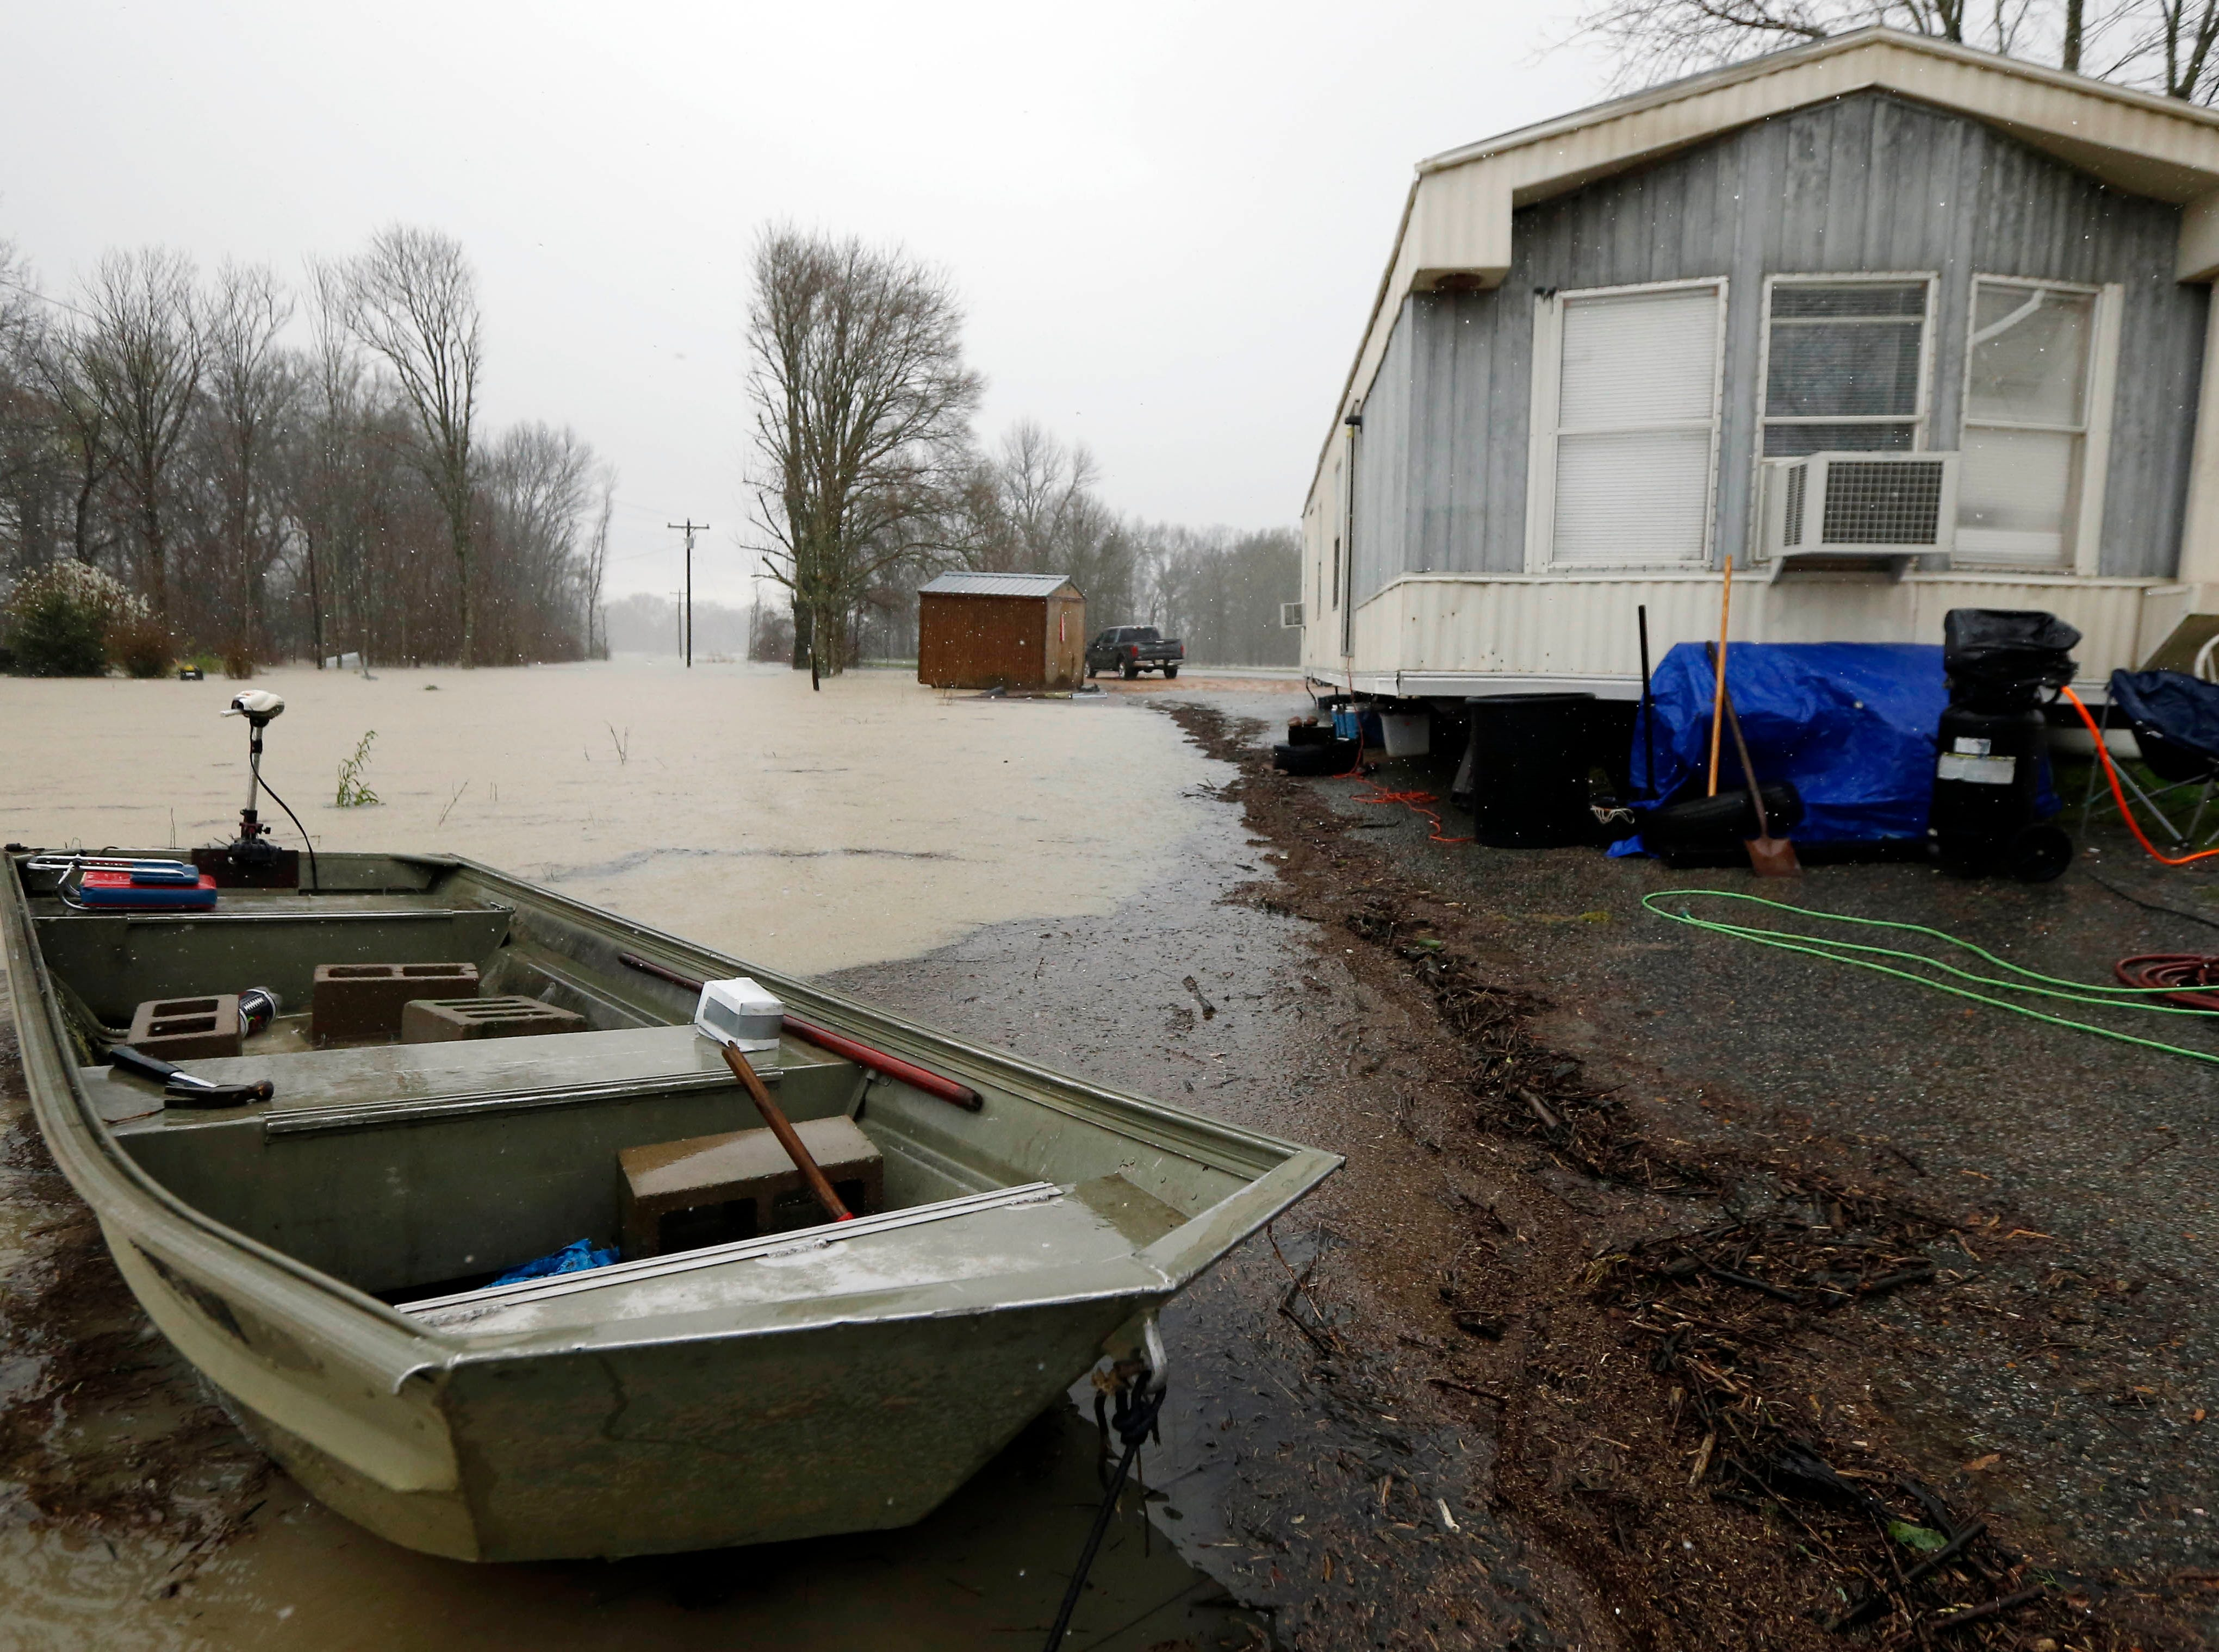 As backflow waters flood home property and farm land along Mississippi 16 near Rolling Fork, Miss., some residents have taken to using small boats to reach their homes, Monday, March 11, 2019. This week the Federal Emergency Management Agency (FEMA), the Mississippi Emergency Management Agency (MEMA), along with select local emergency management offices will be conducting joint damage assessments in response to the severe storms and flooding are impacting the state. (AP Photo/Rogelio V. Solis)